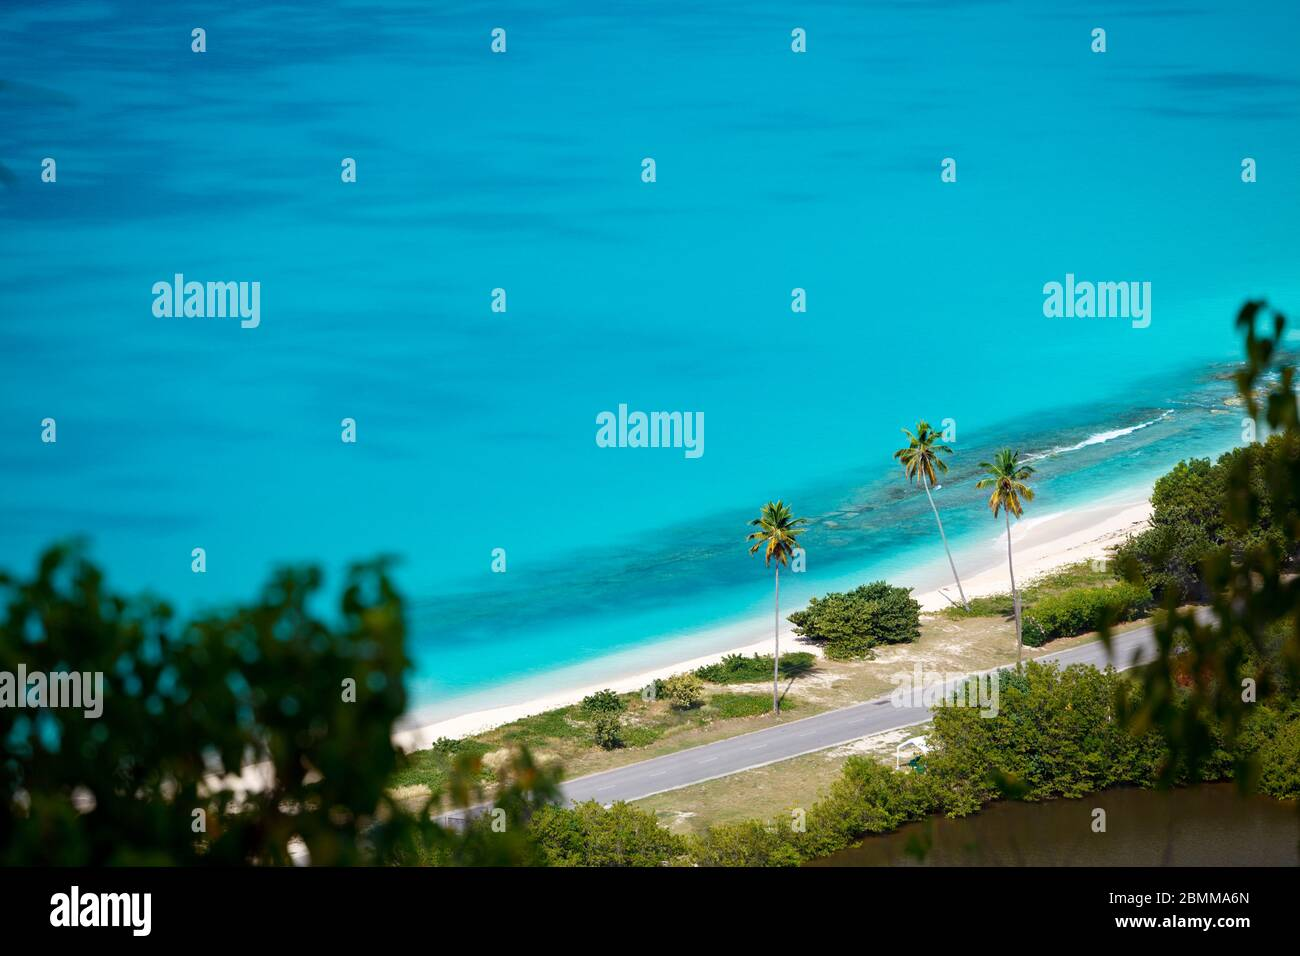 Darkwood Beach with palm trees seen from a high observation point in Antigua. Stock Photo